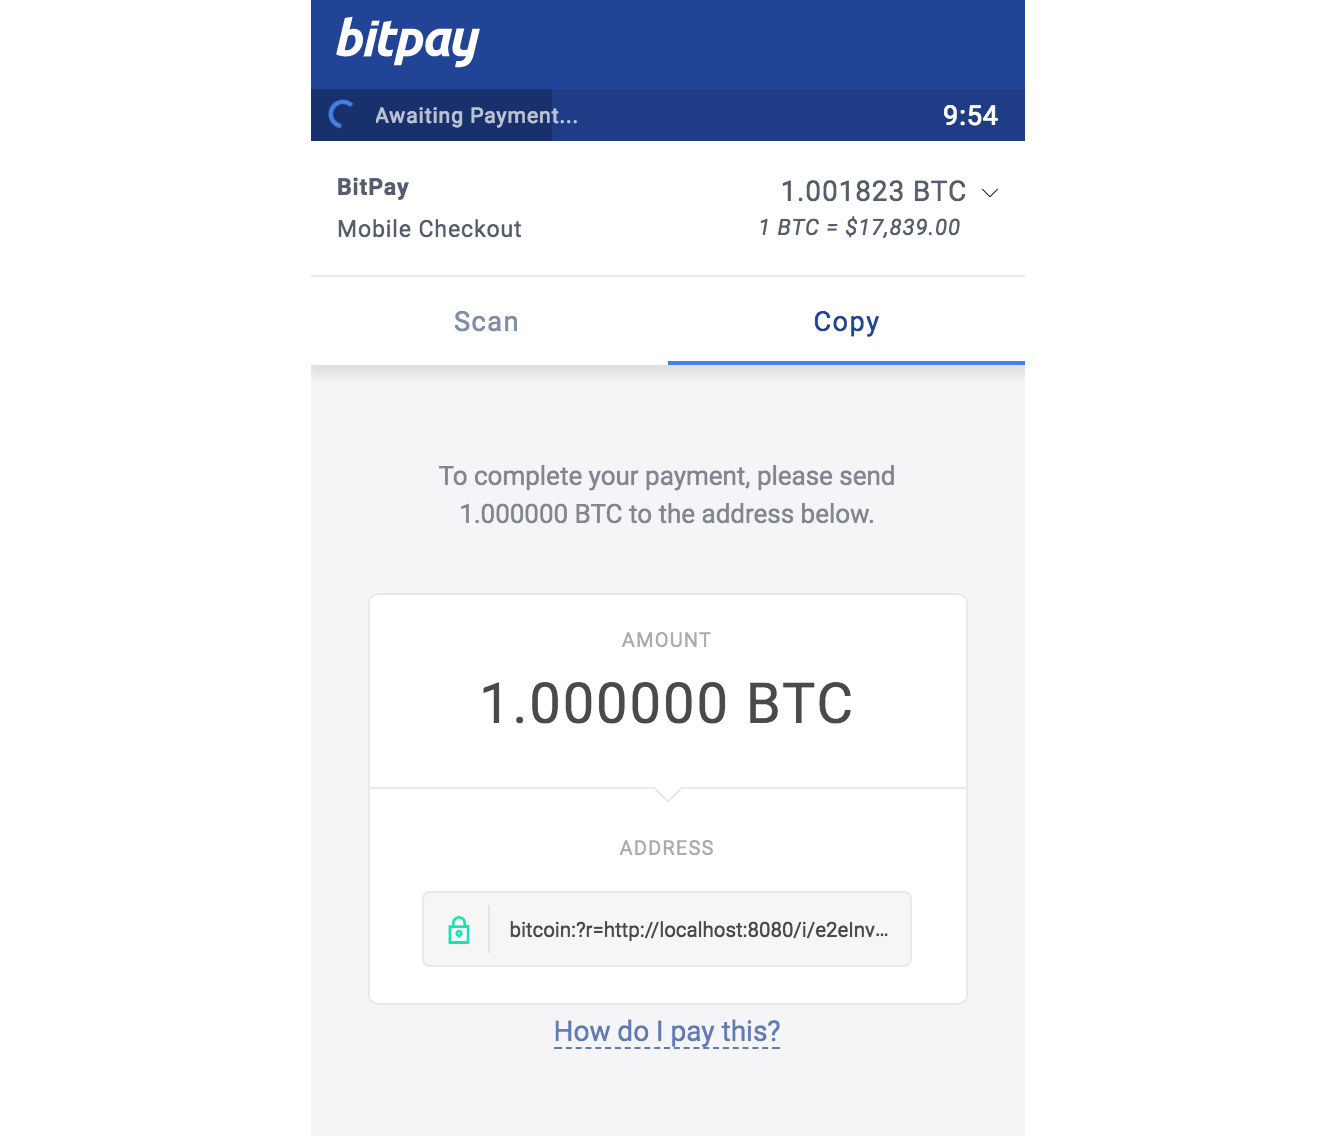 Can now pay bitpay